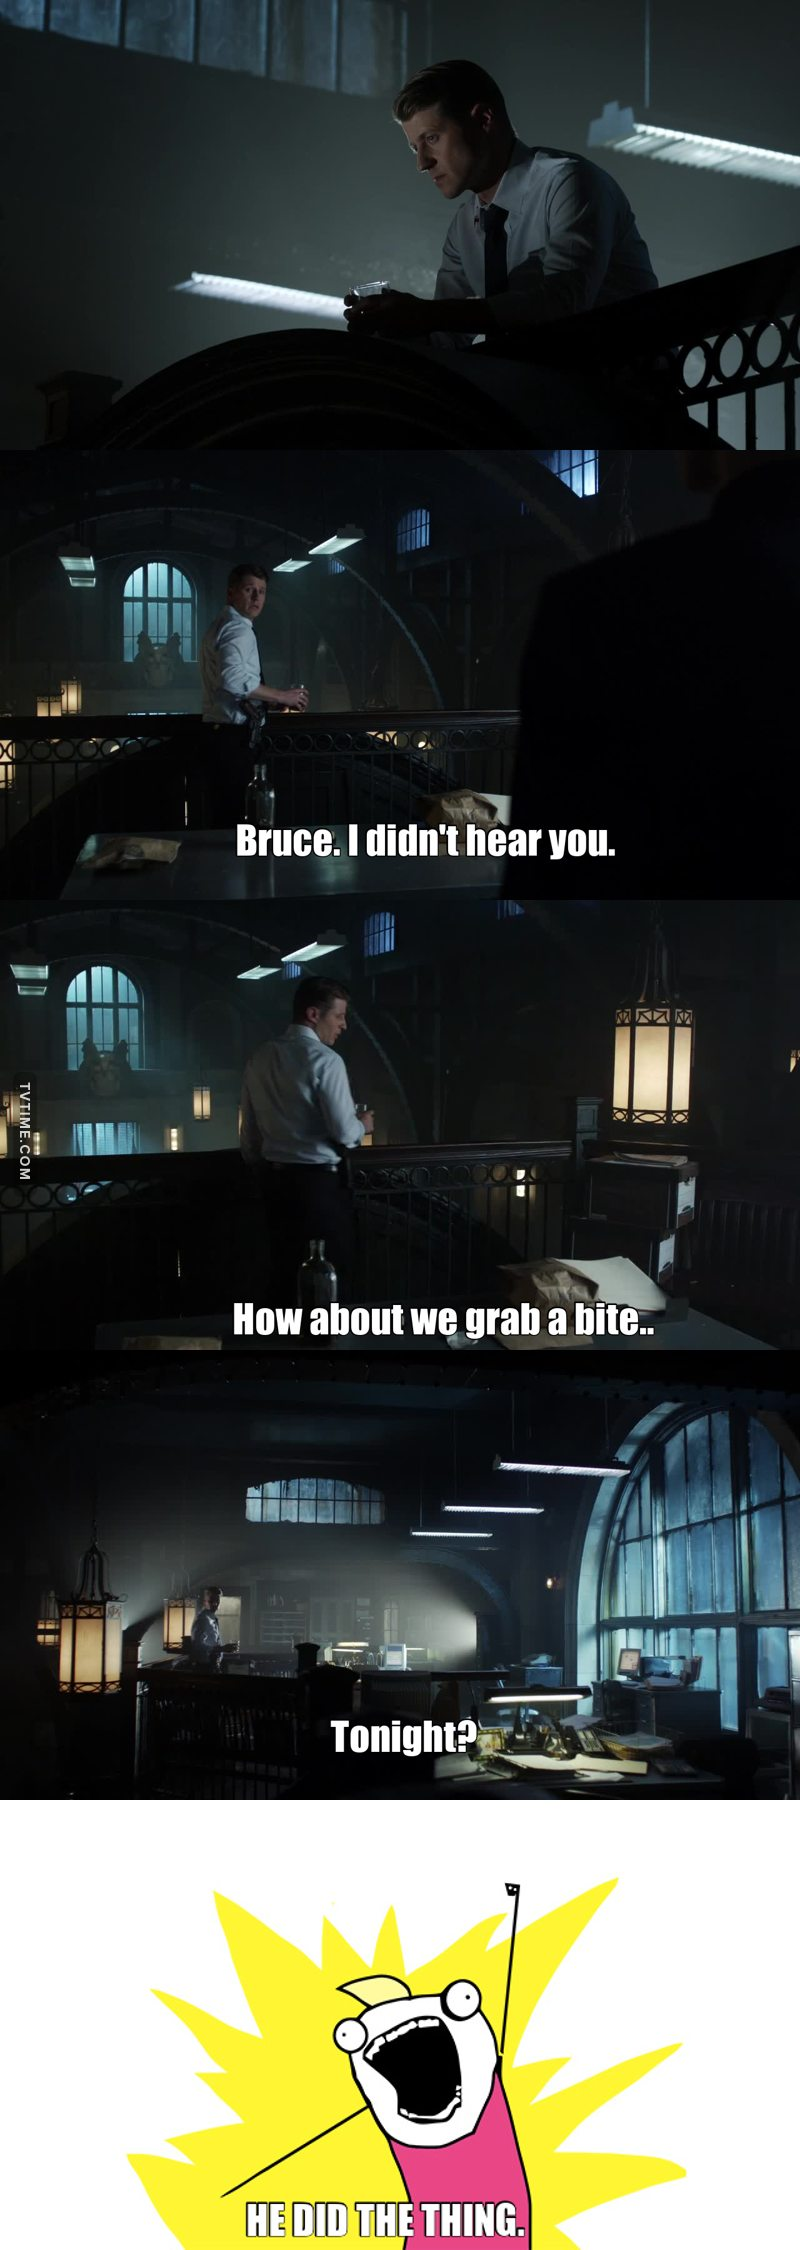 He did the thing. Holy shit he did the thing. In case you don't know what I'm referring to, one of my favourite aspects of the Gordon-Batman relationship is how Batman disappears without a sound, leaving a bewildered Gordon in his wake. AND THEY DID IT. I'm looking forward to this season of Gotham more than anything else. 👏👏